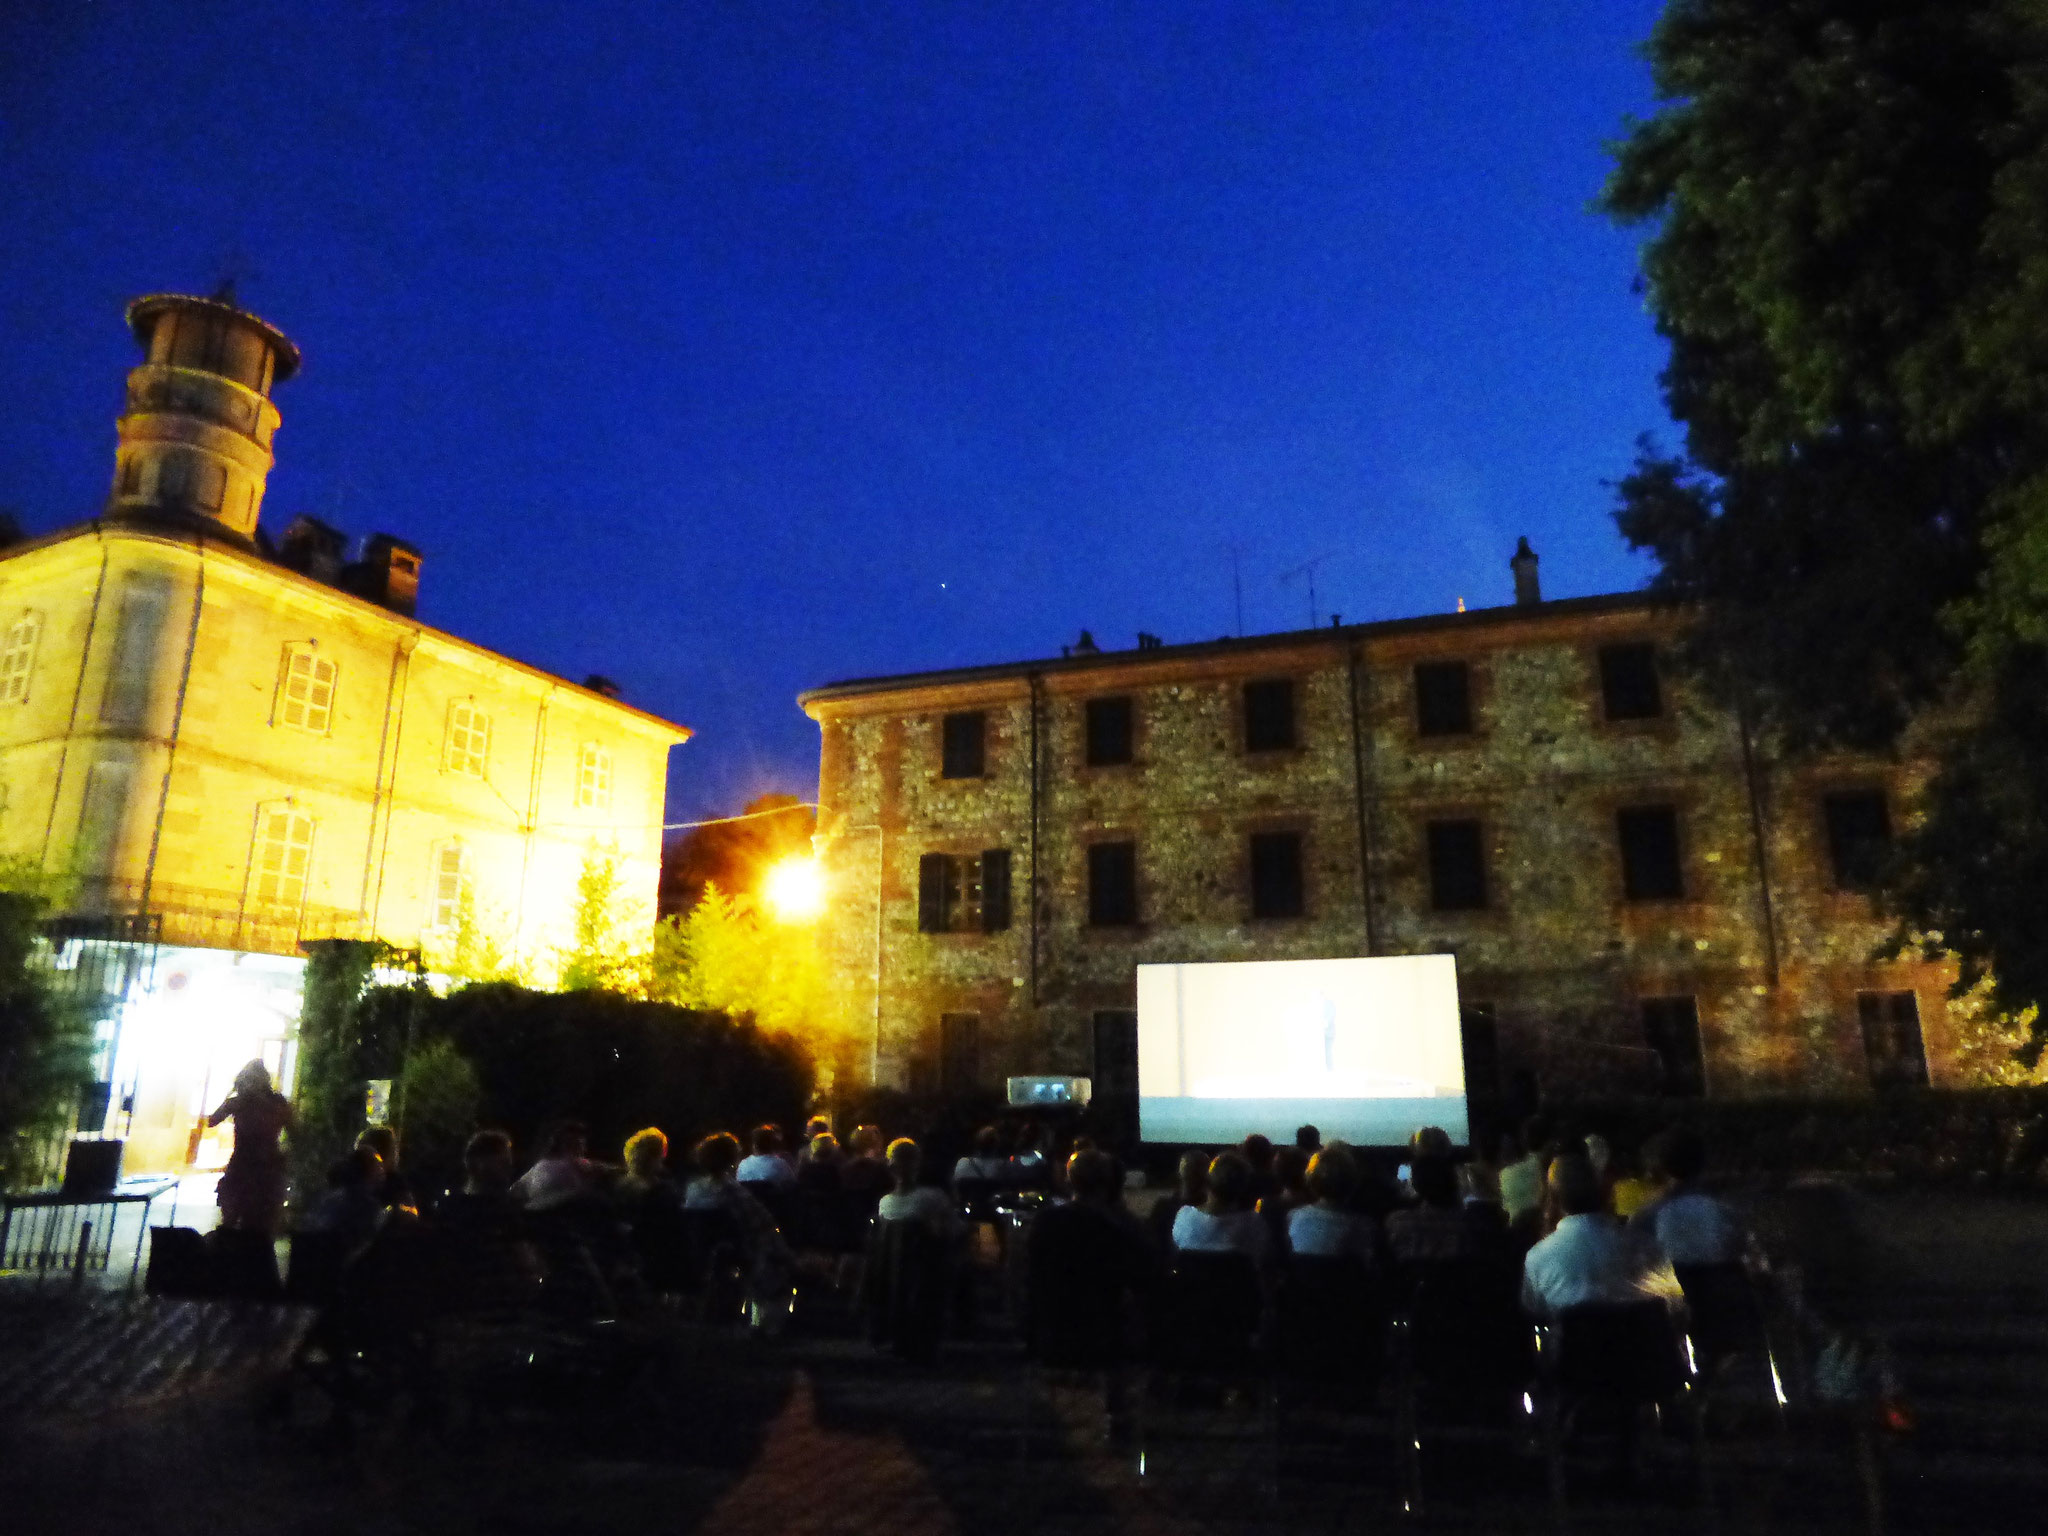 Rivergaro Cinema sotto le stelle 2 agosto 2018